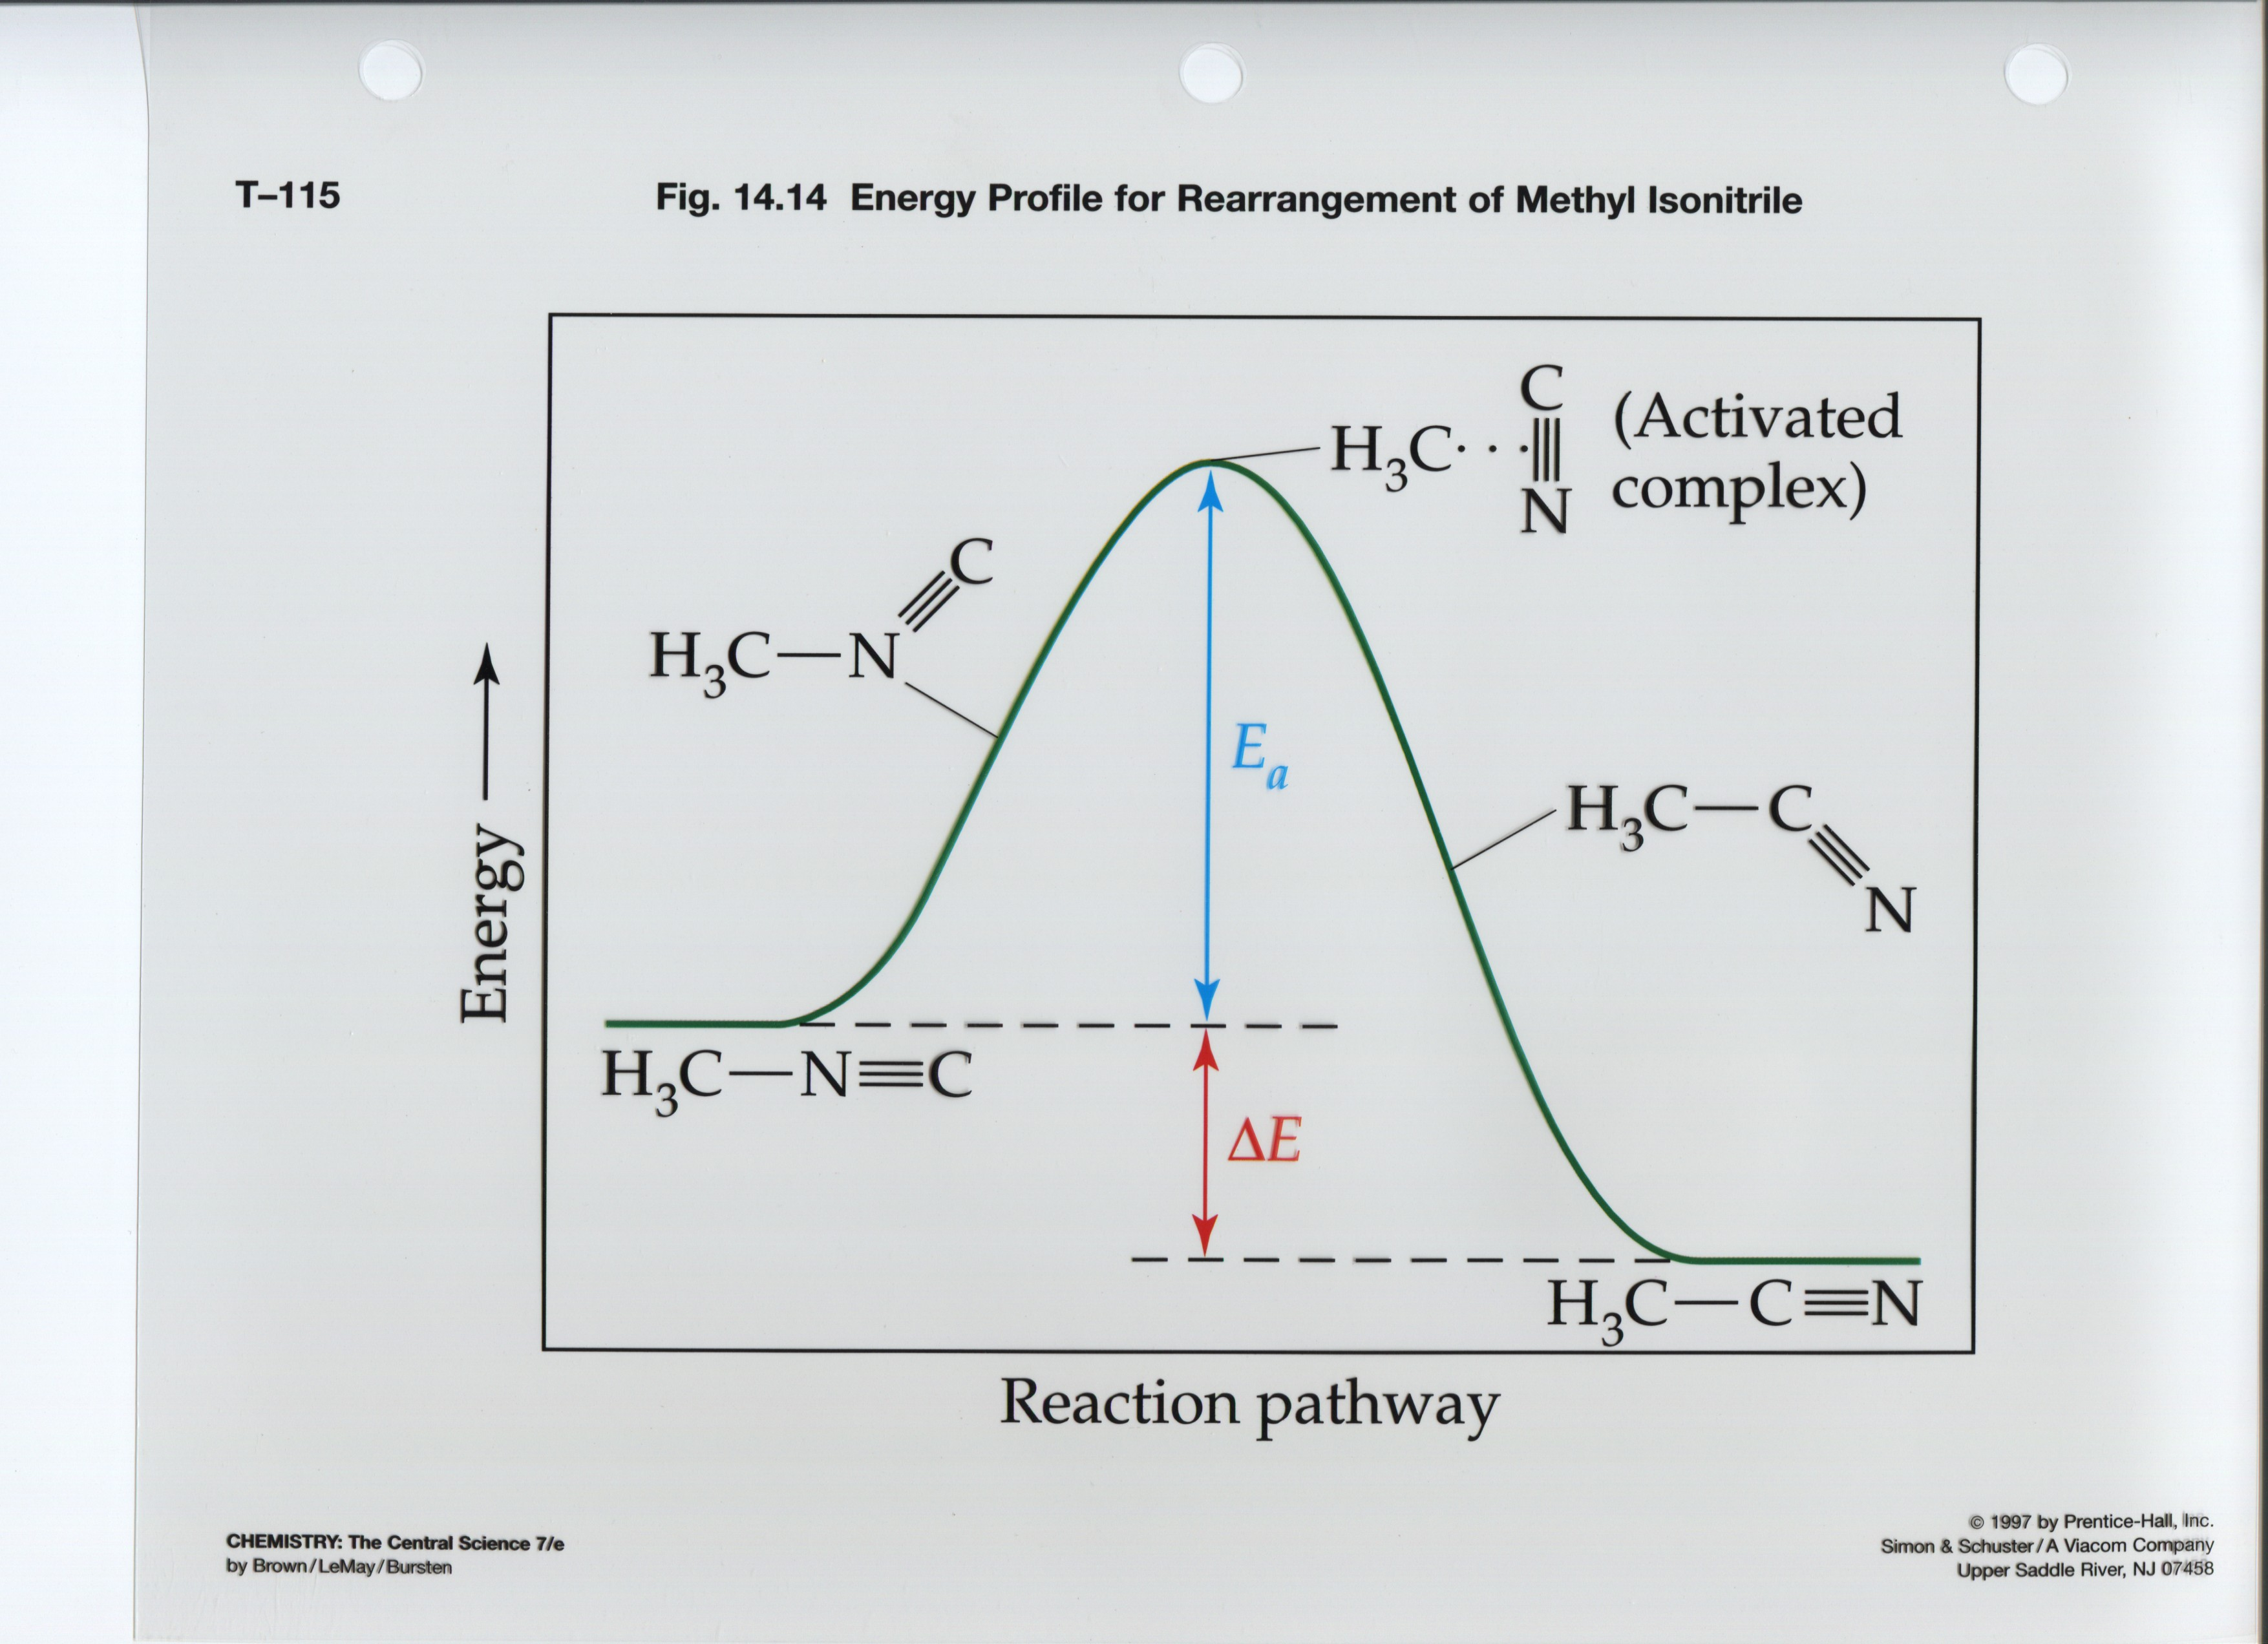 Chemistry reference imagestransparencies 10232015 415 pm 1075286 enthalpy diagramsg 10232015 415 pm 885686 entropy change for reaction and surroundingsg pooptronica